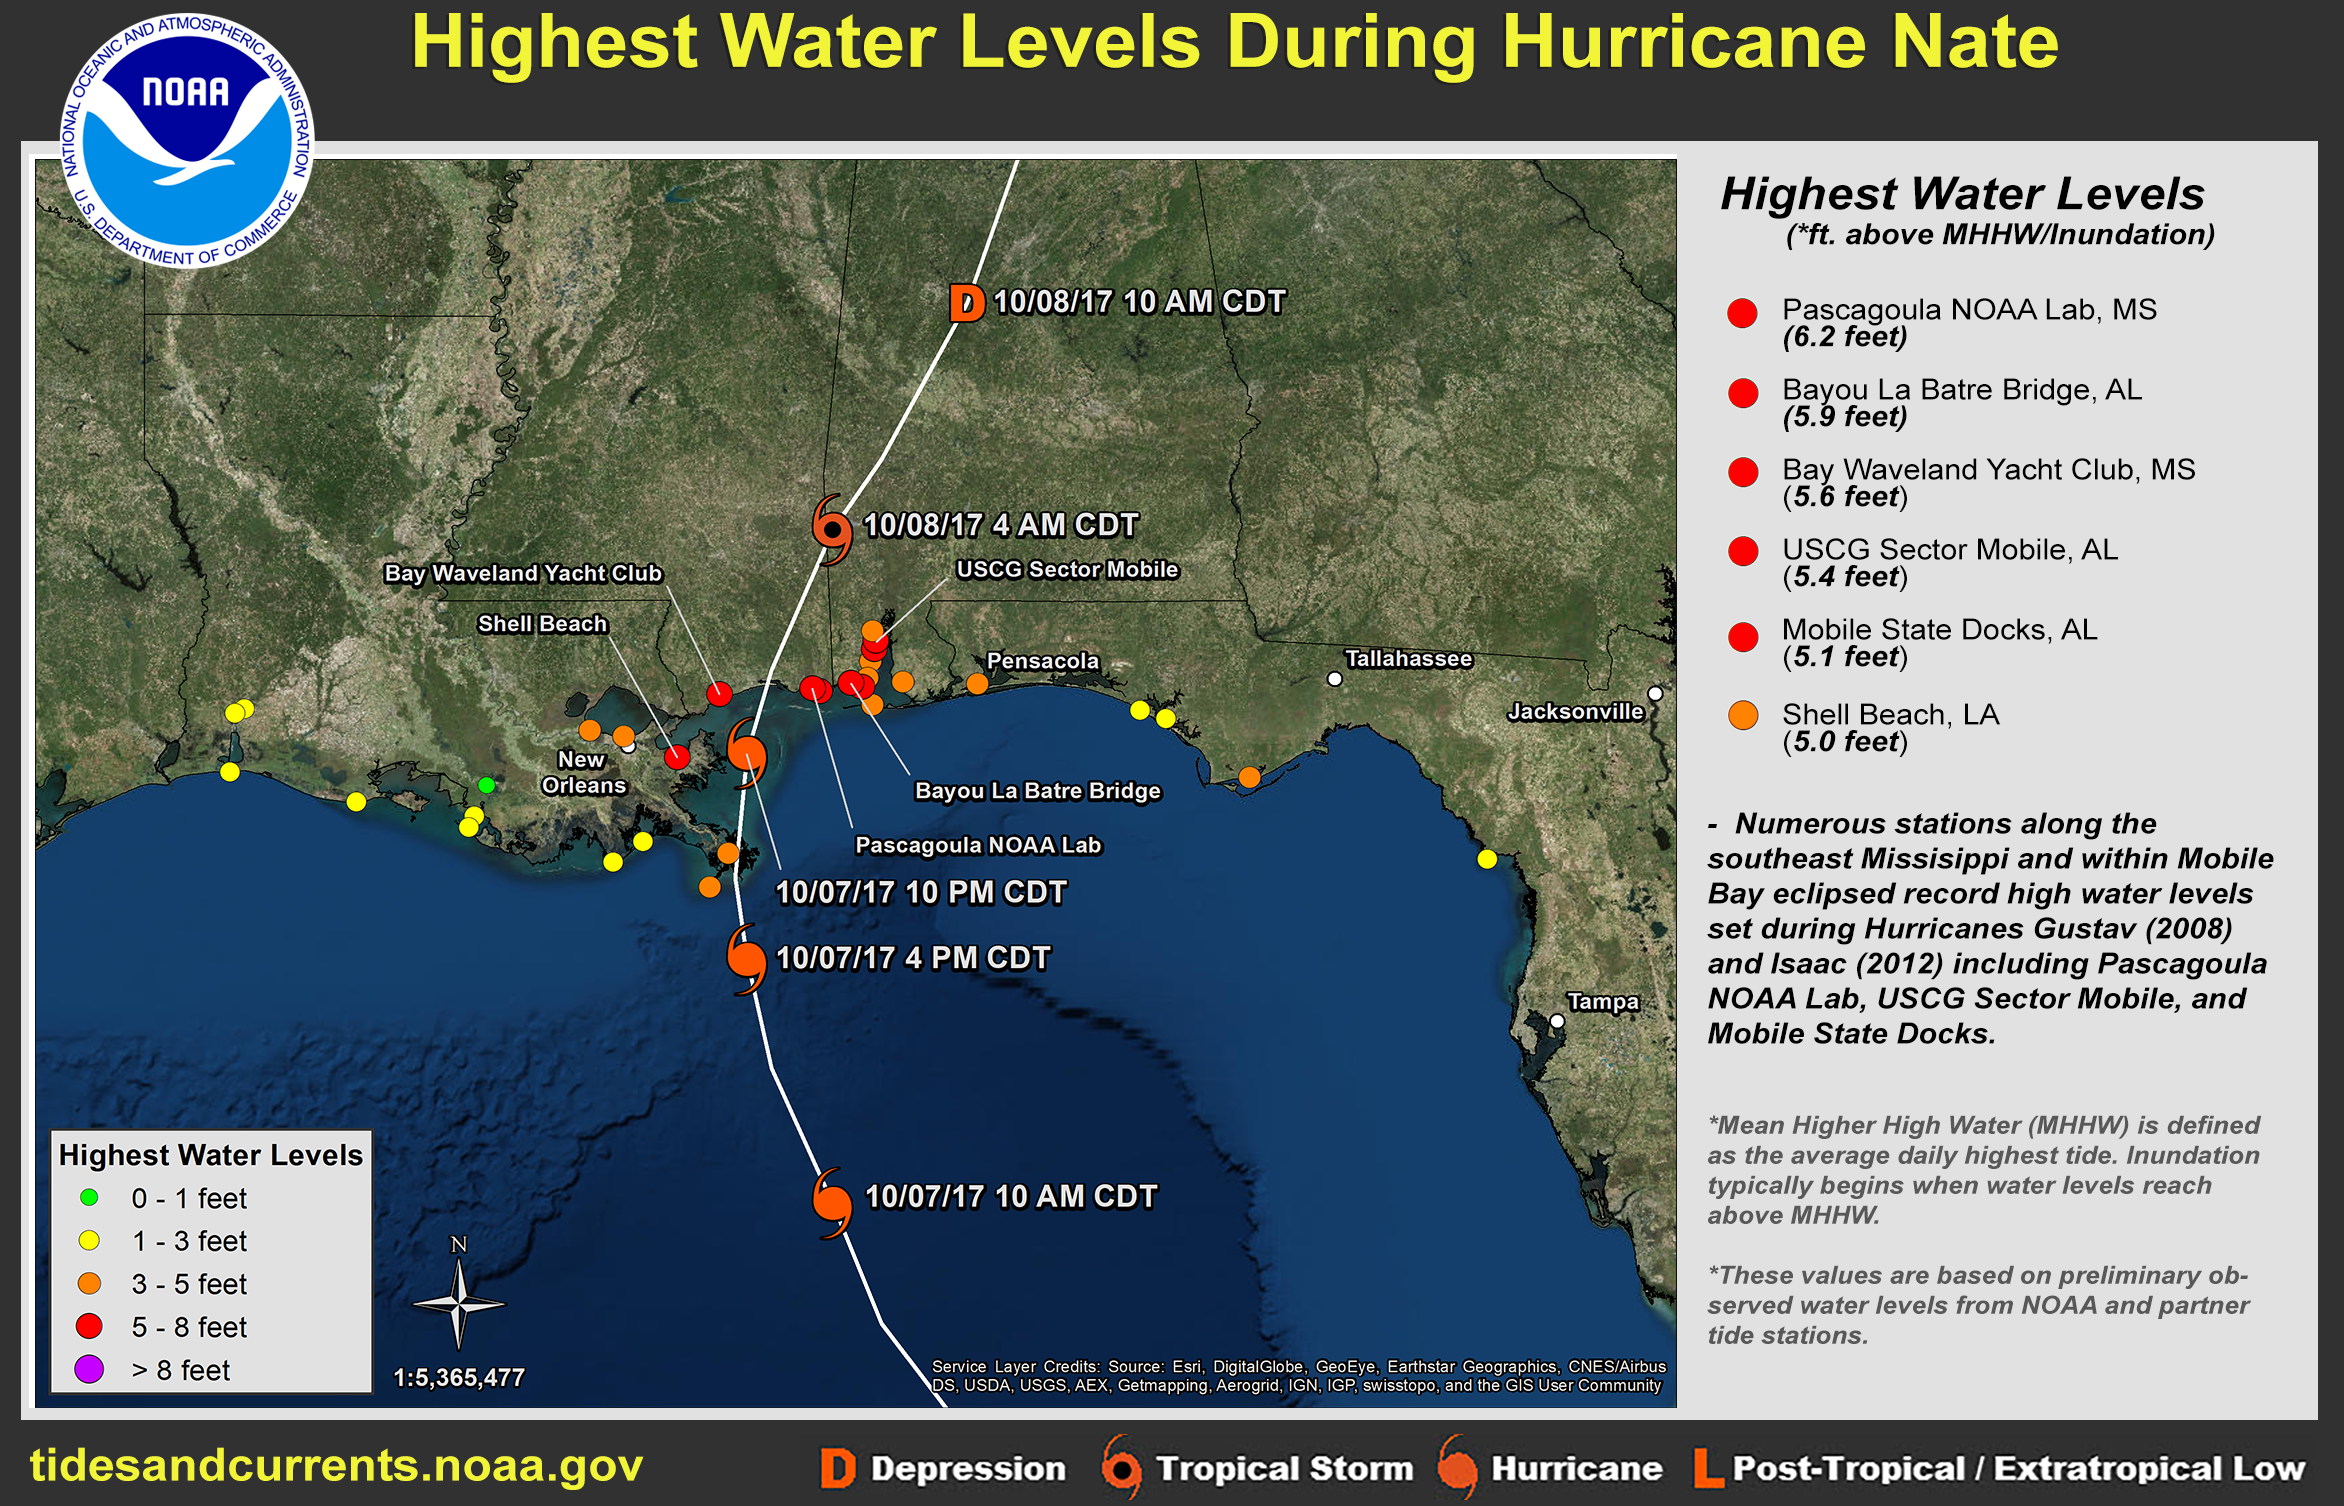 Highest Water Levels During Hurricane Nate